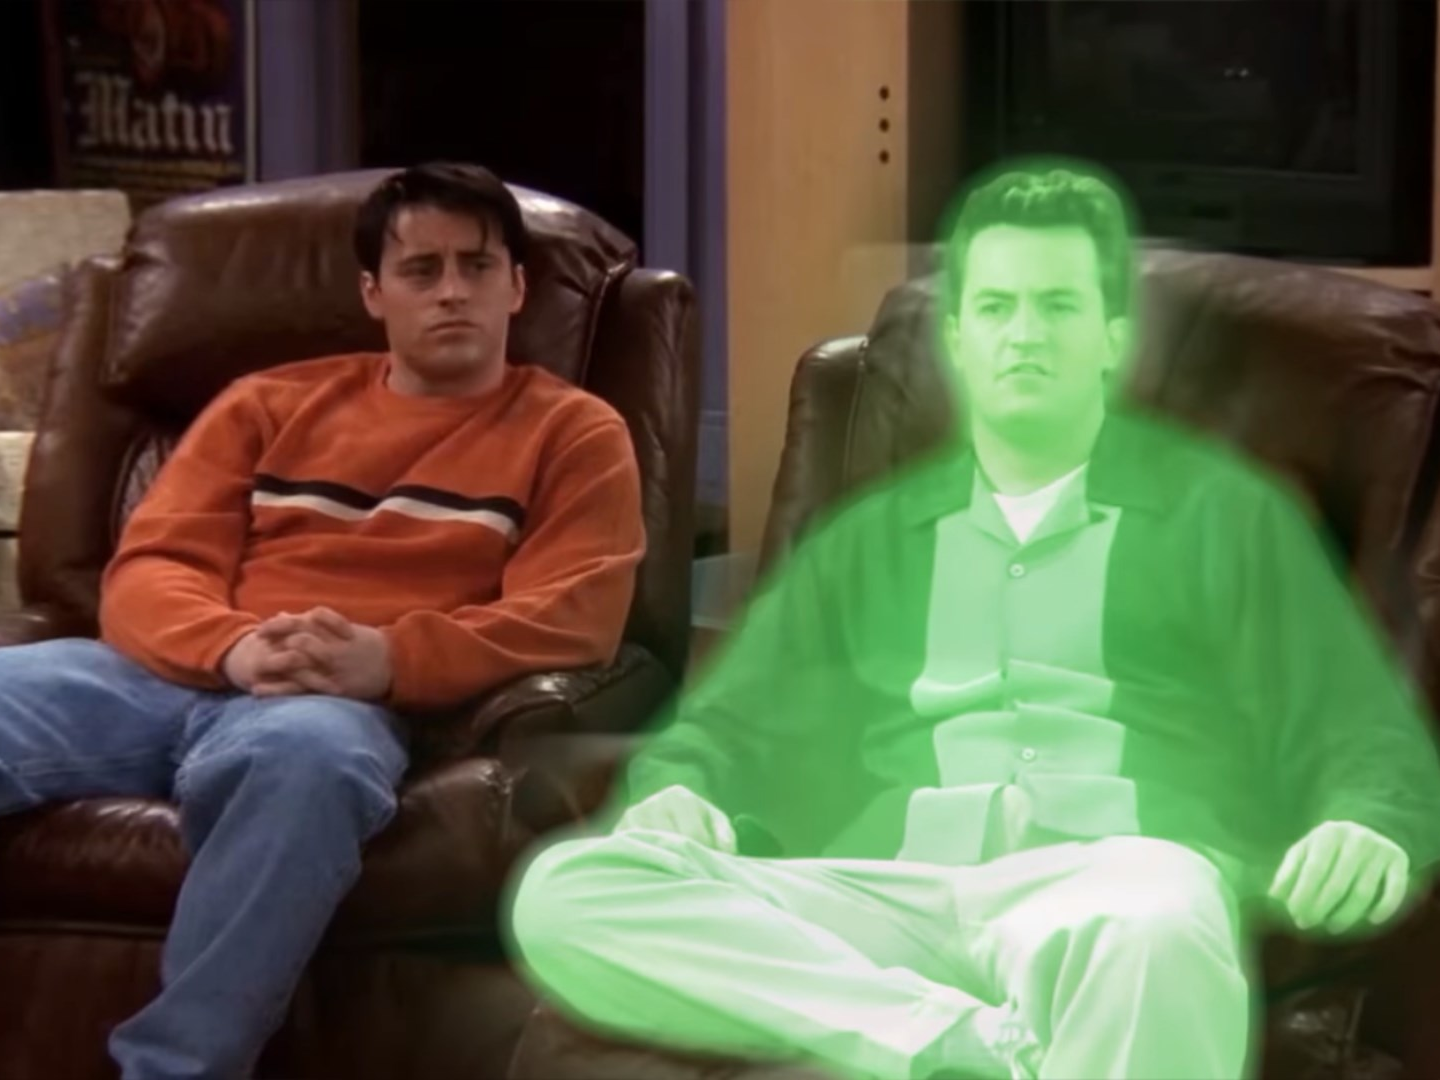 Chandler, Chandler Bing, F.R.I.E.N.D.S., the one where chandler dies, F.R.I.E.N.D.S. Reunion, Joey